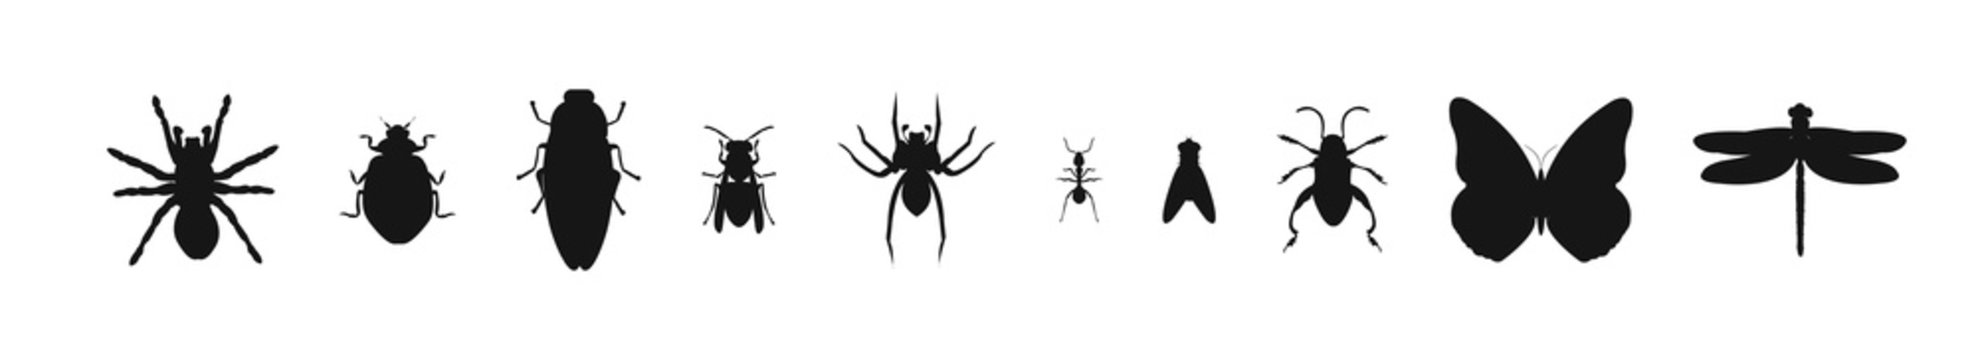 Insect silhouette icon collection on white background. Spider beetle and mosquits set.